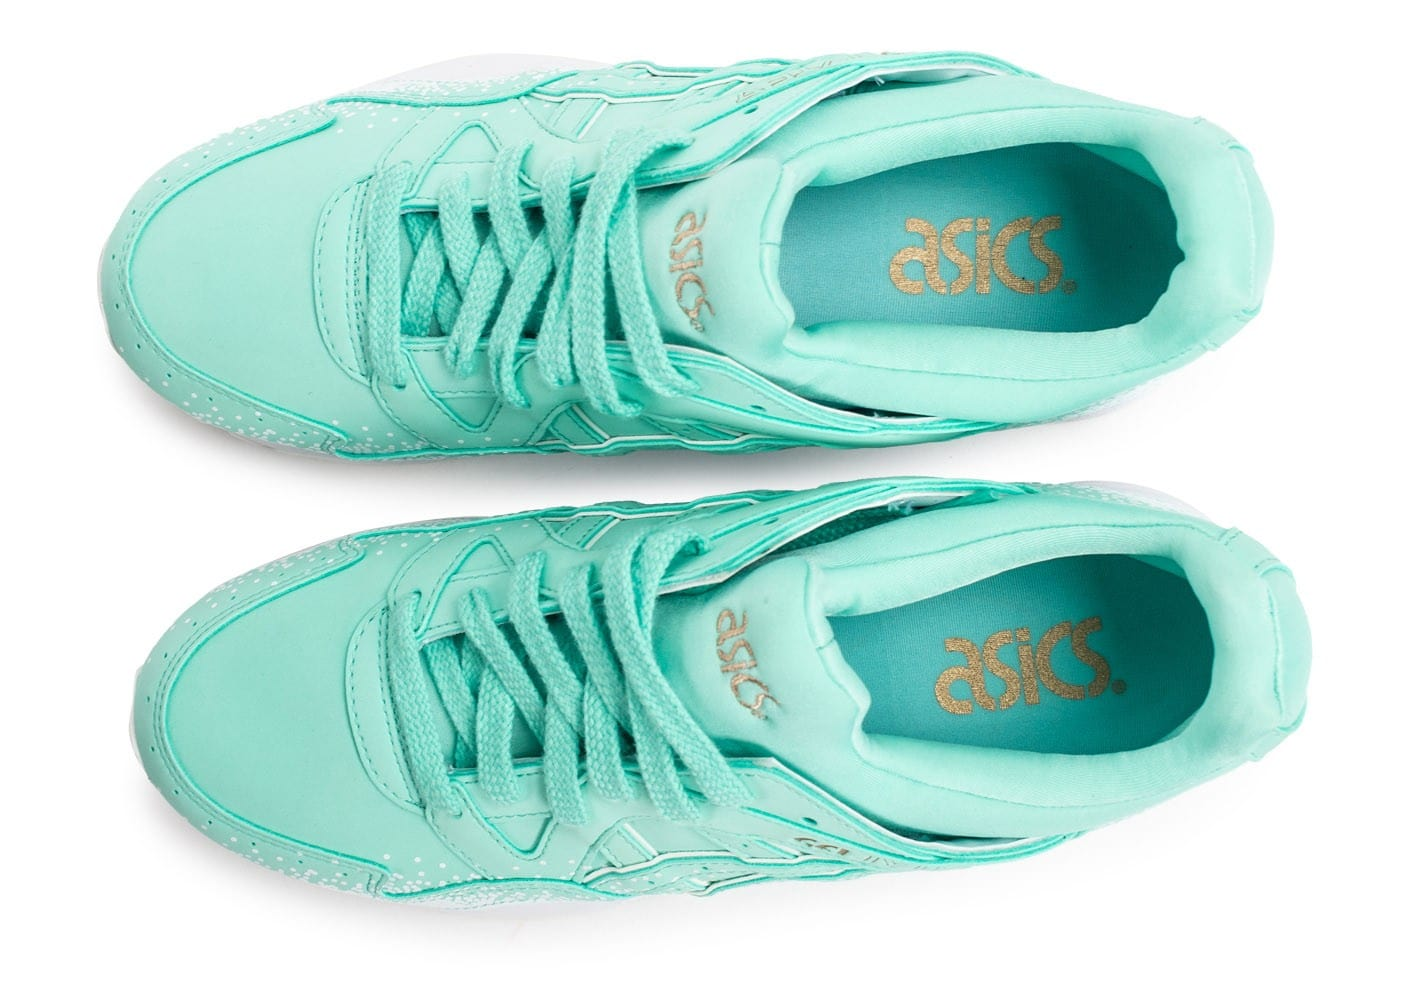 chaussures asics femme turquoise